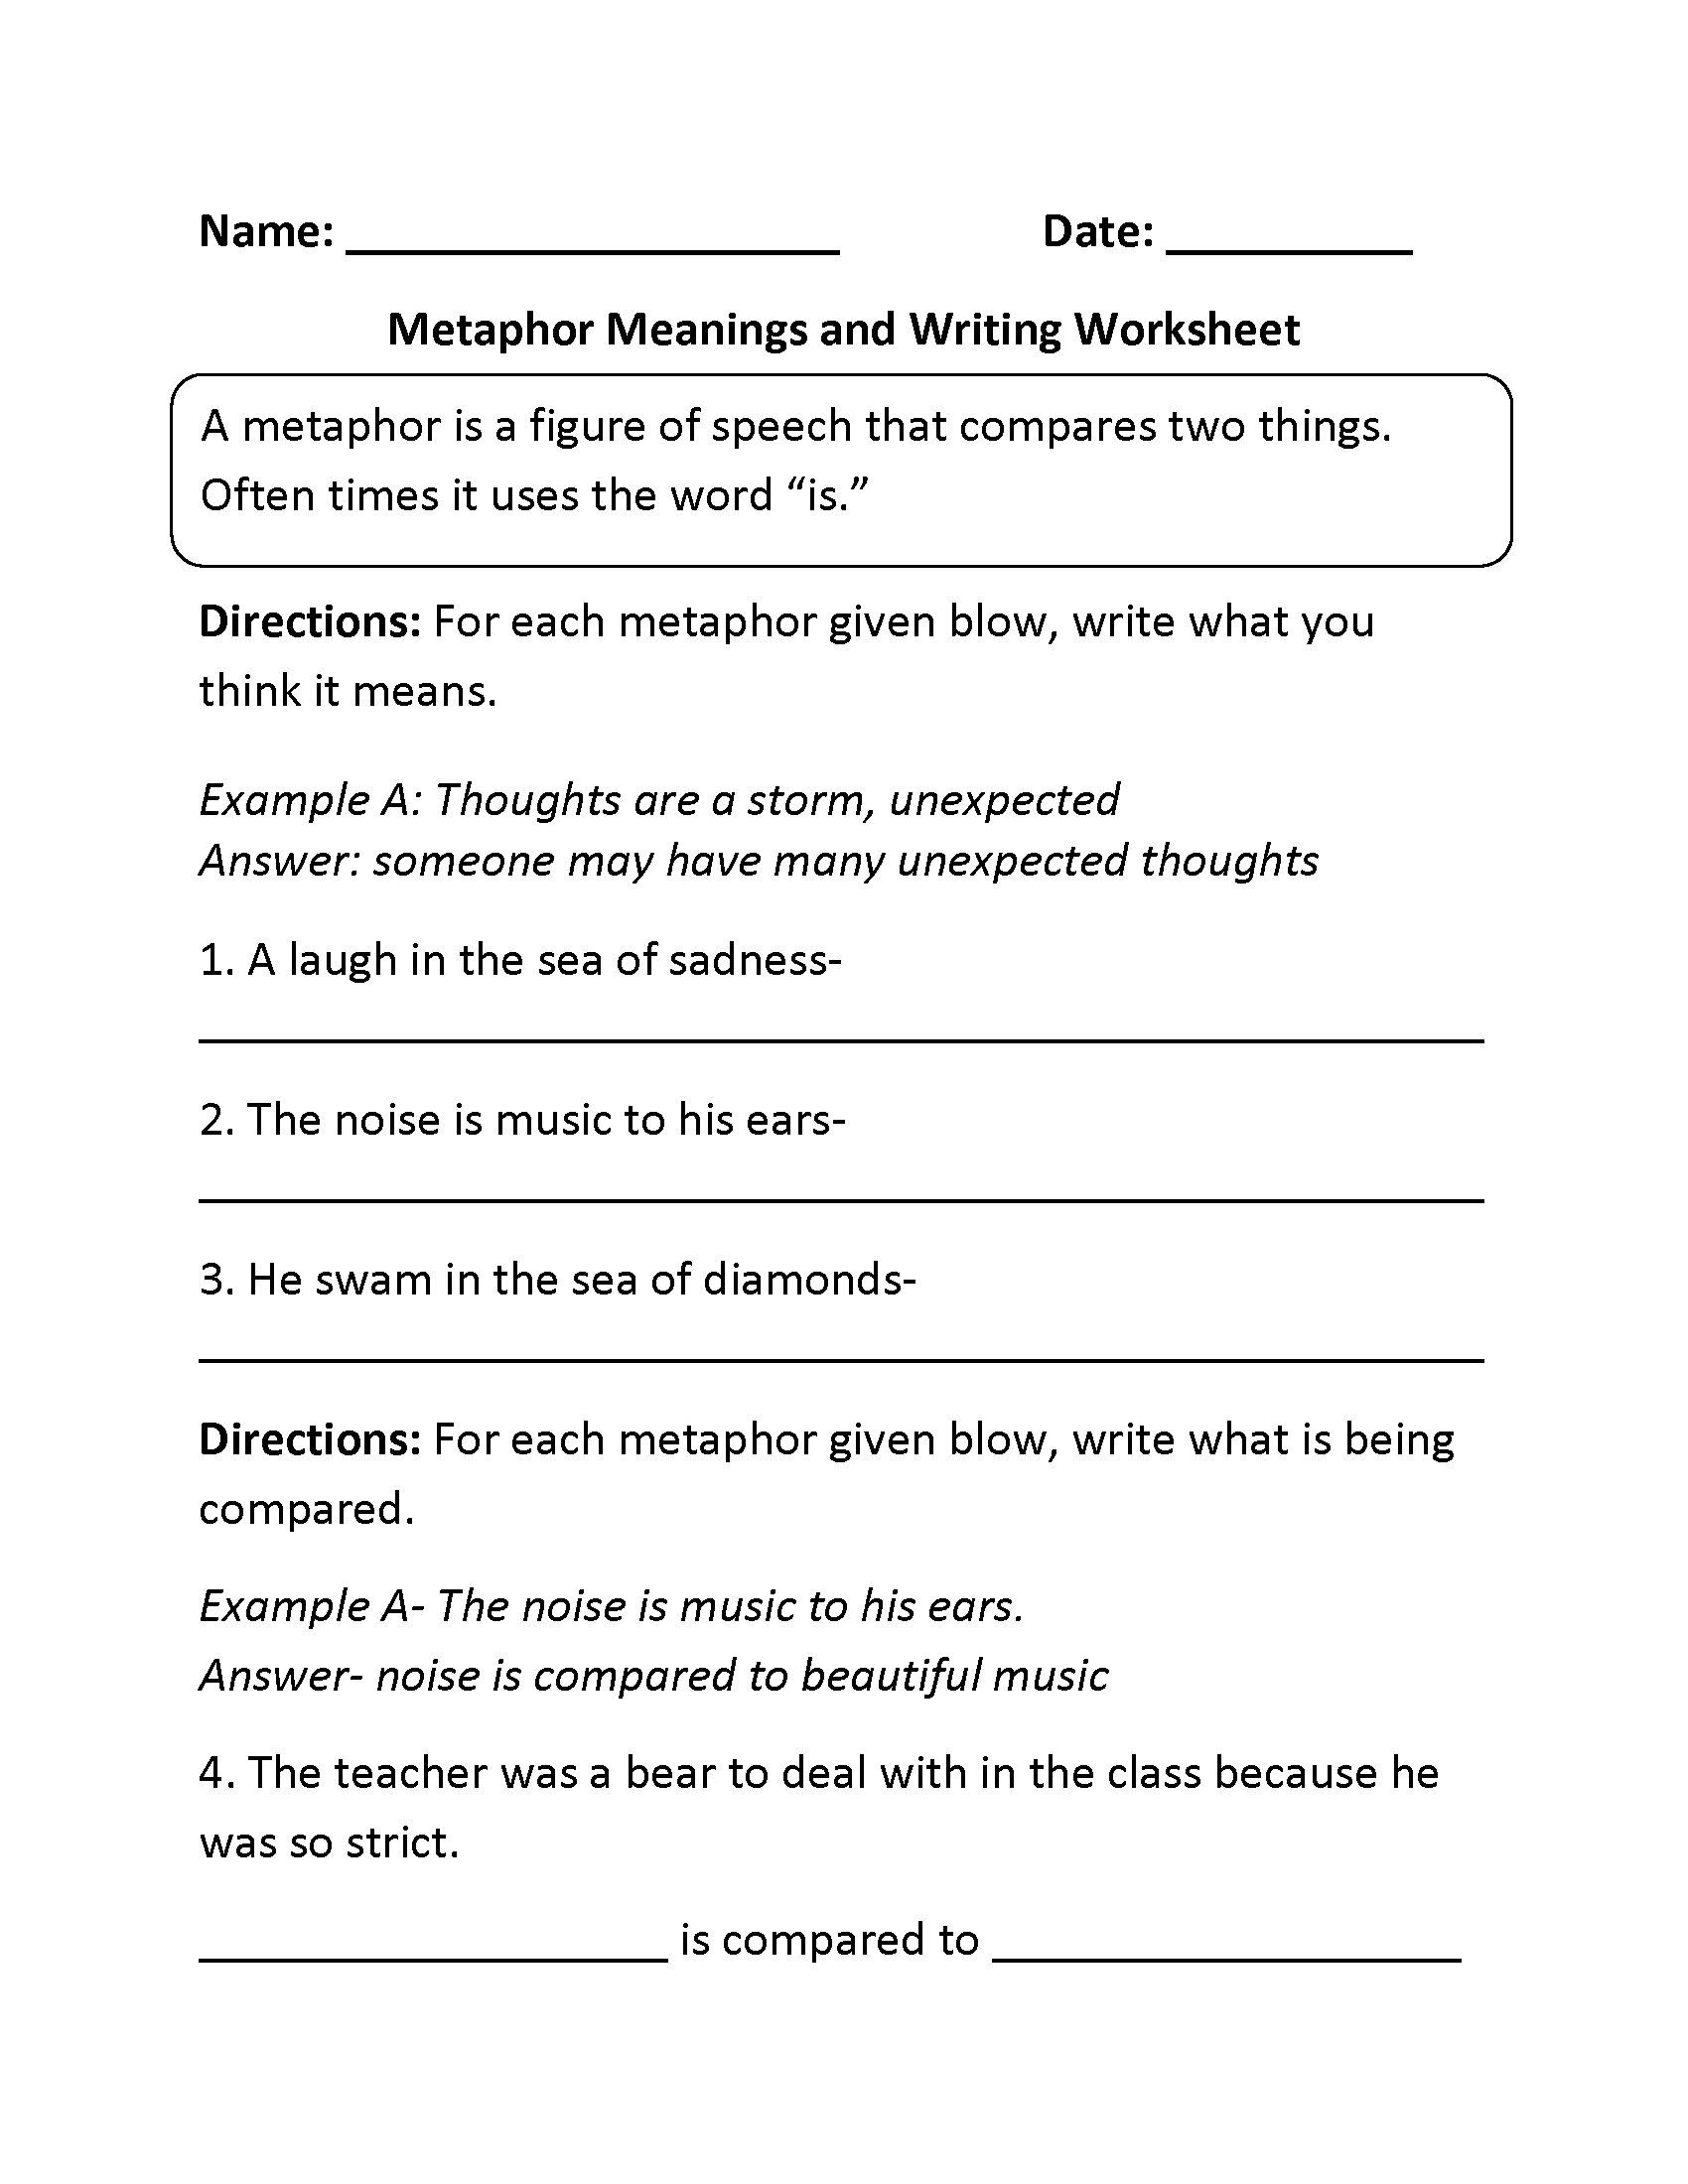 Comparing And Meanings Metaphors Worksheet